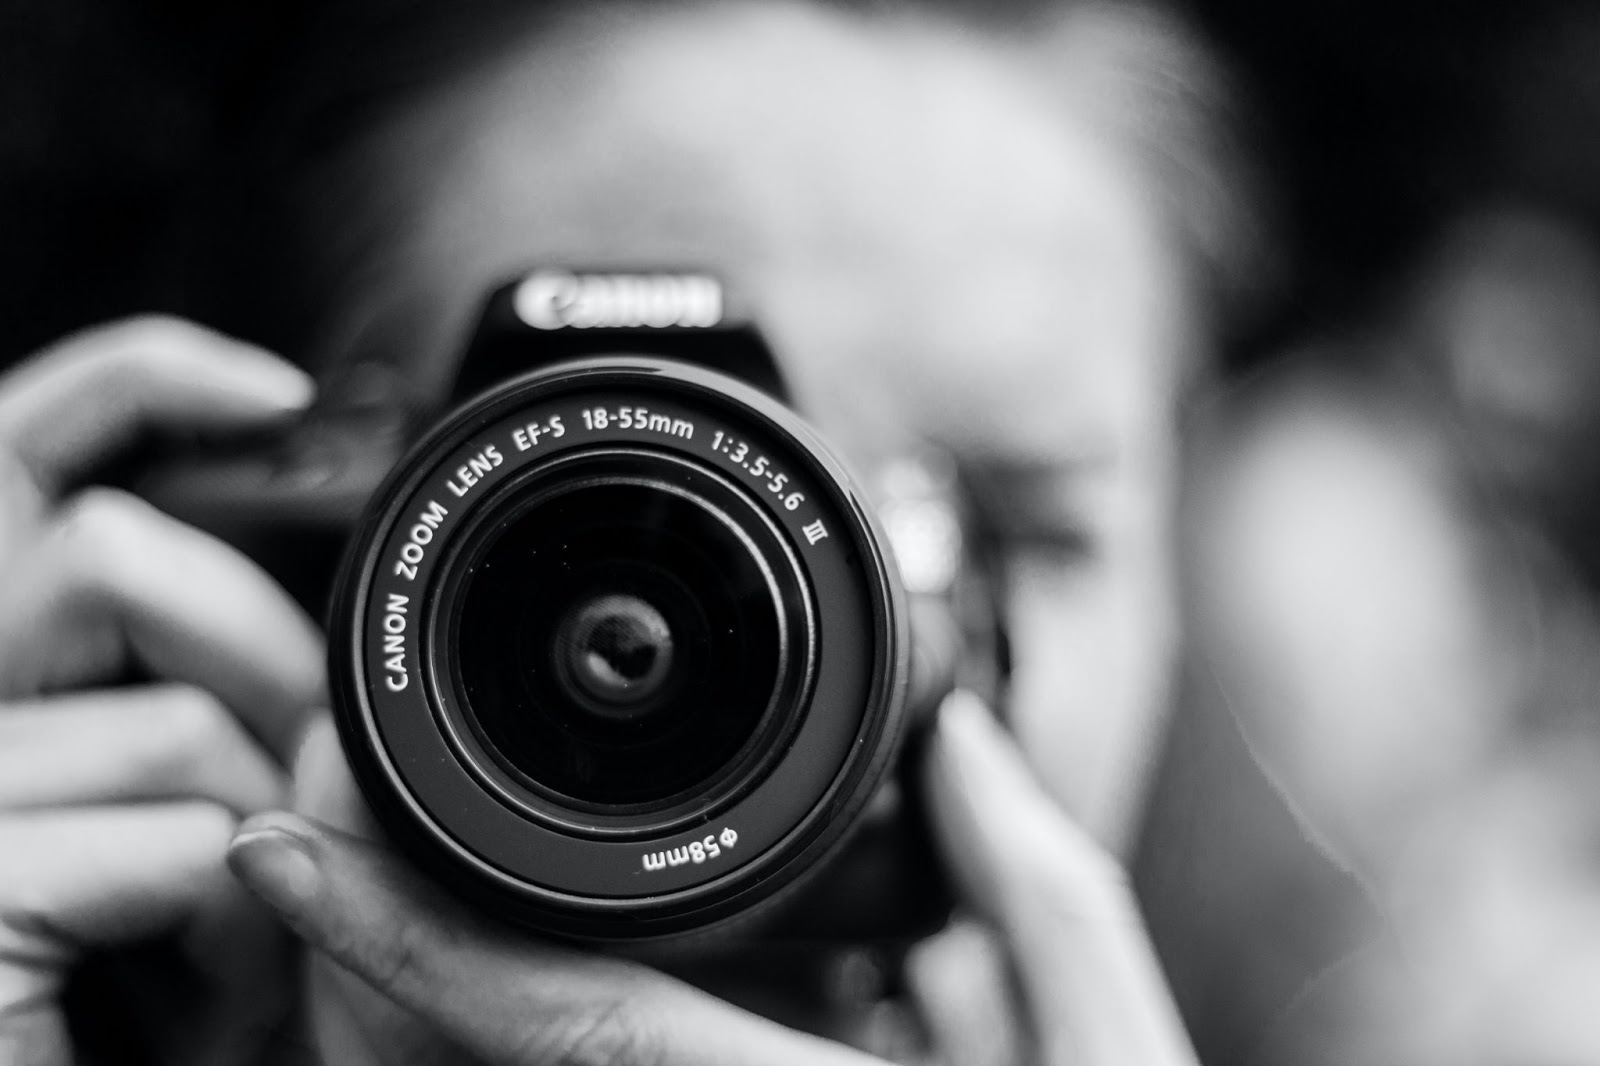 An image of a person taking a picture with a Canon camera.